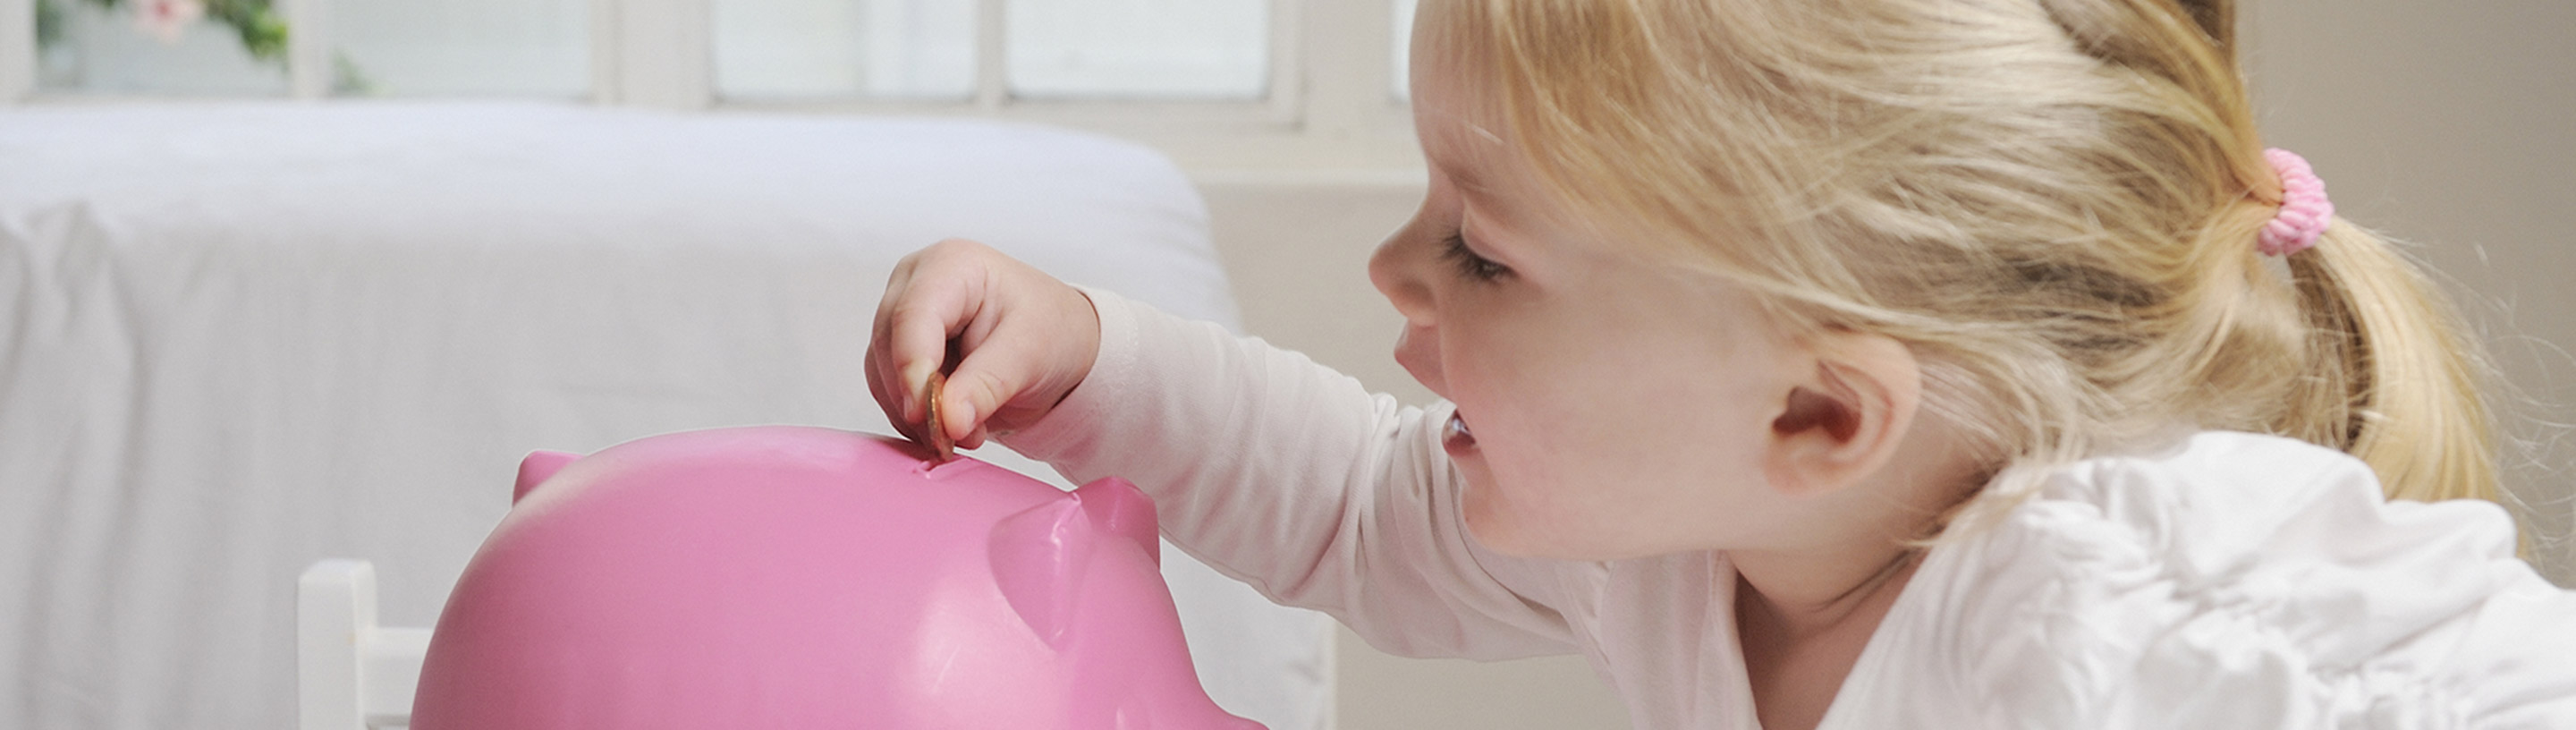 the girl puts a coin in the piggy bank